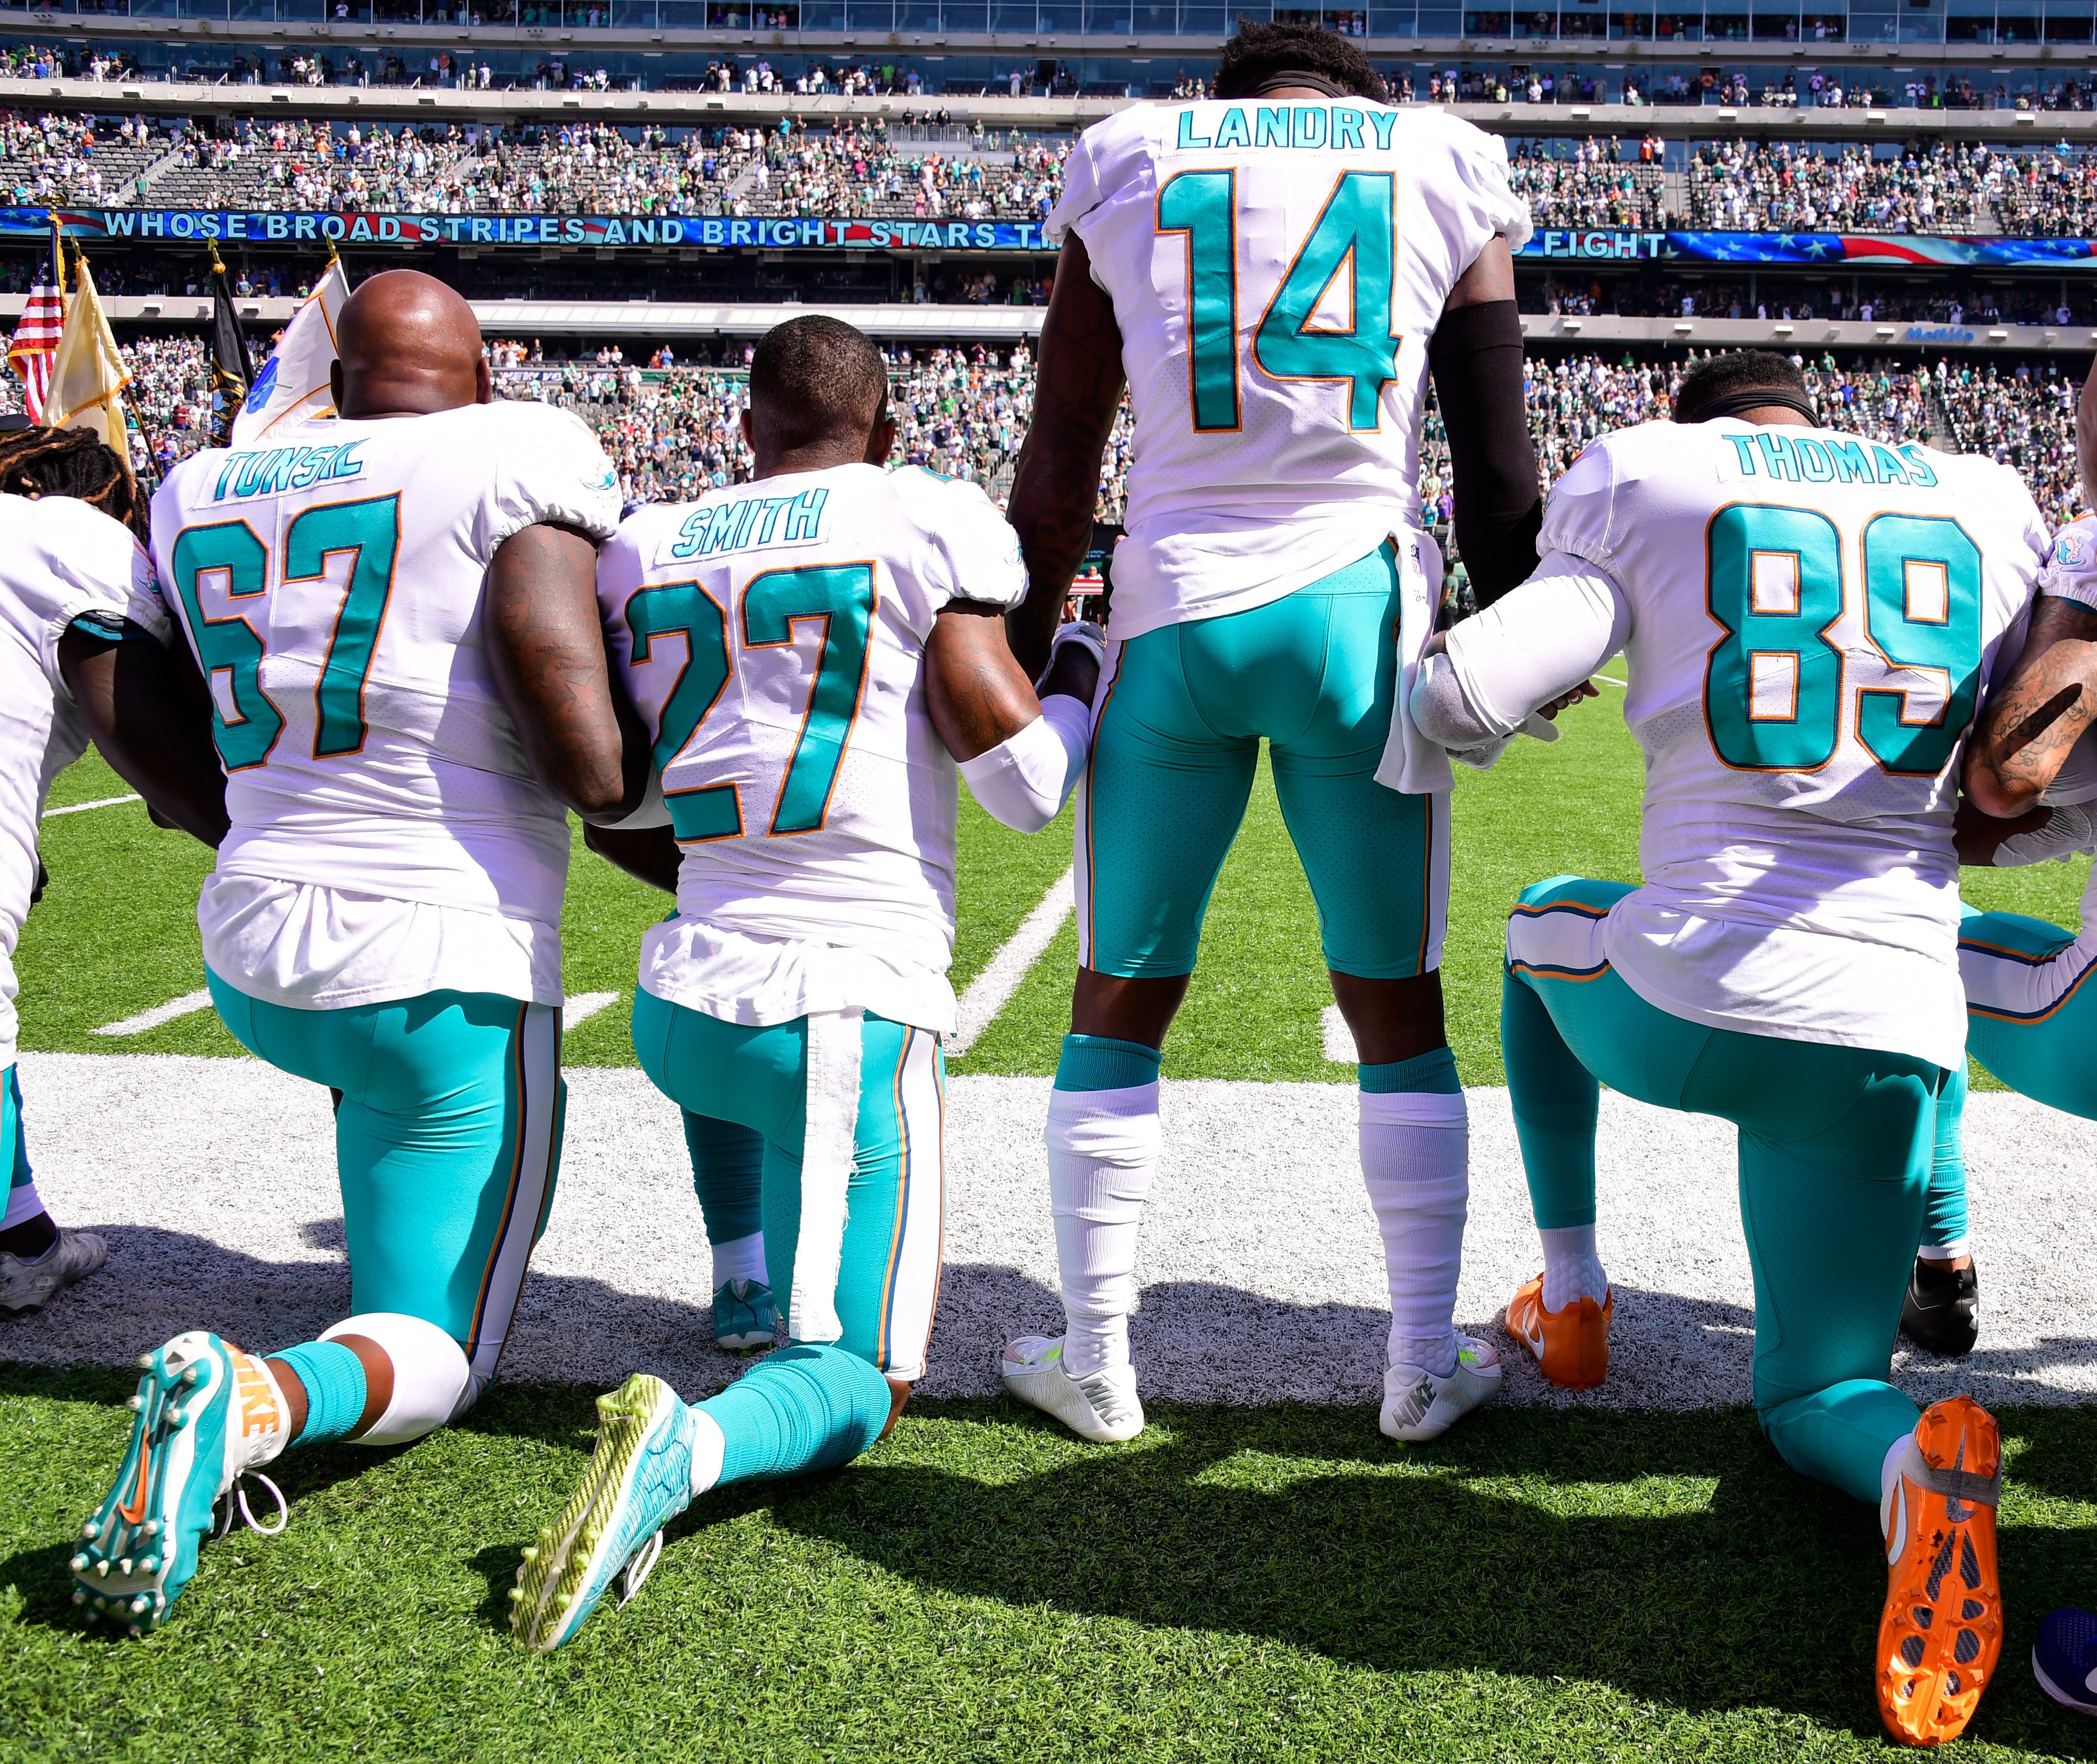 Miami Dolphins May Fine Or Suspend Players Who Kneel For